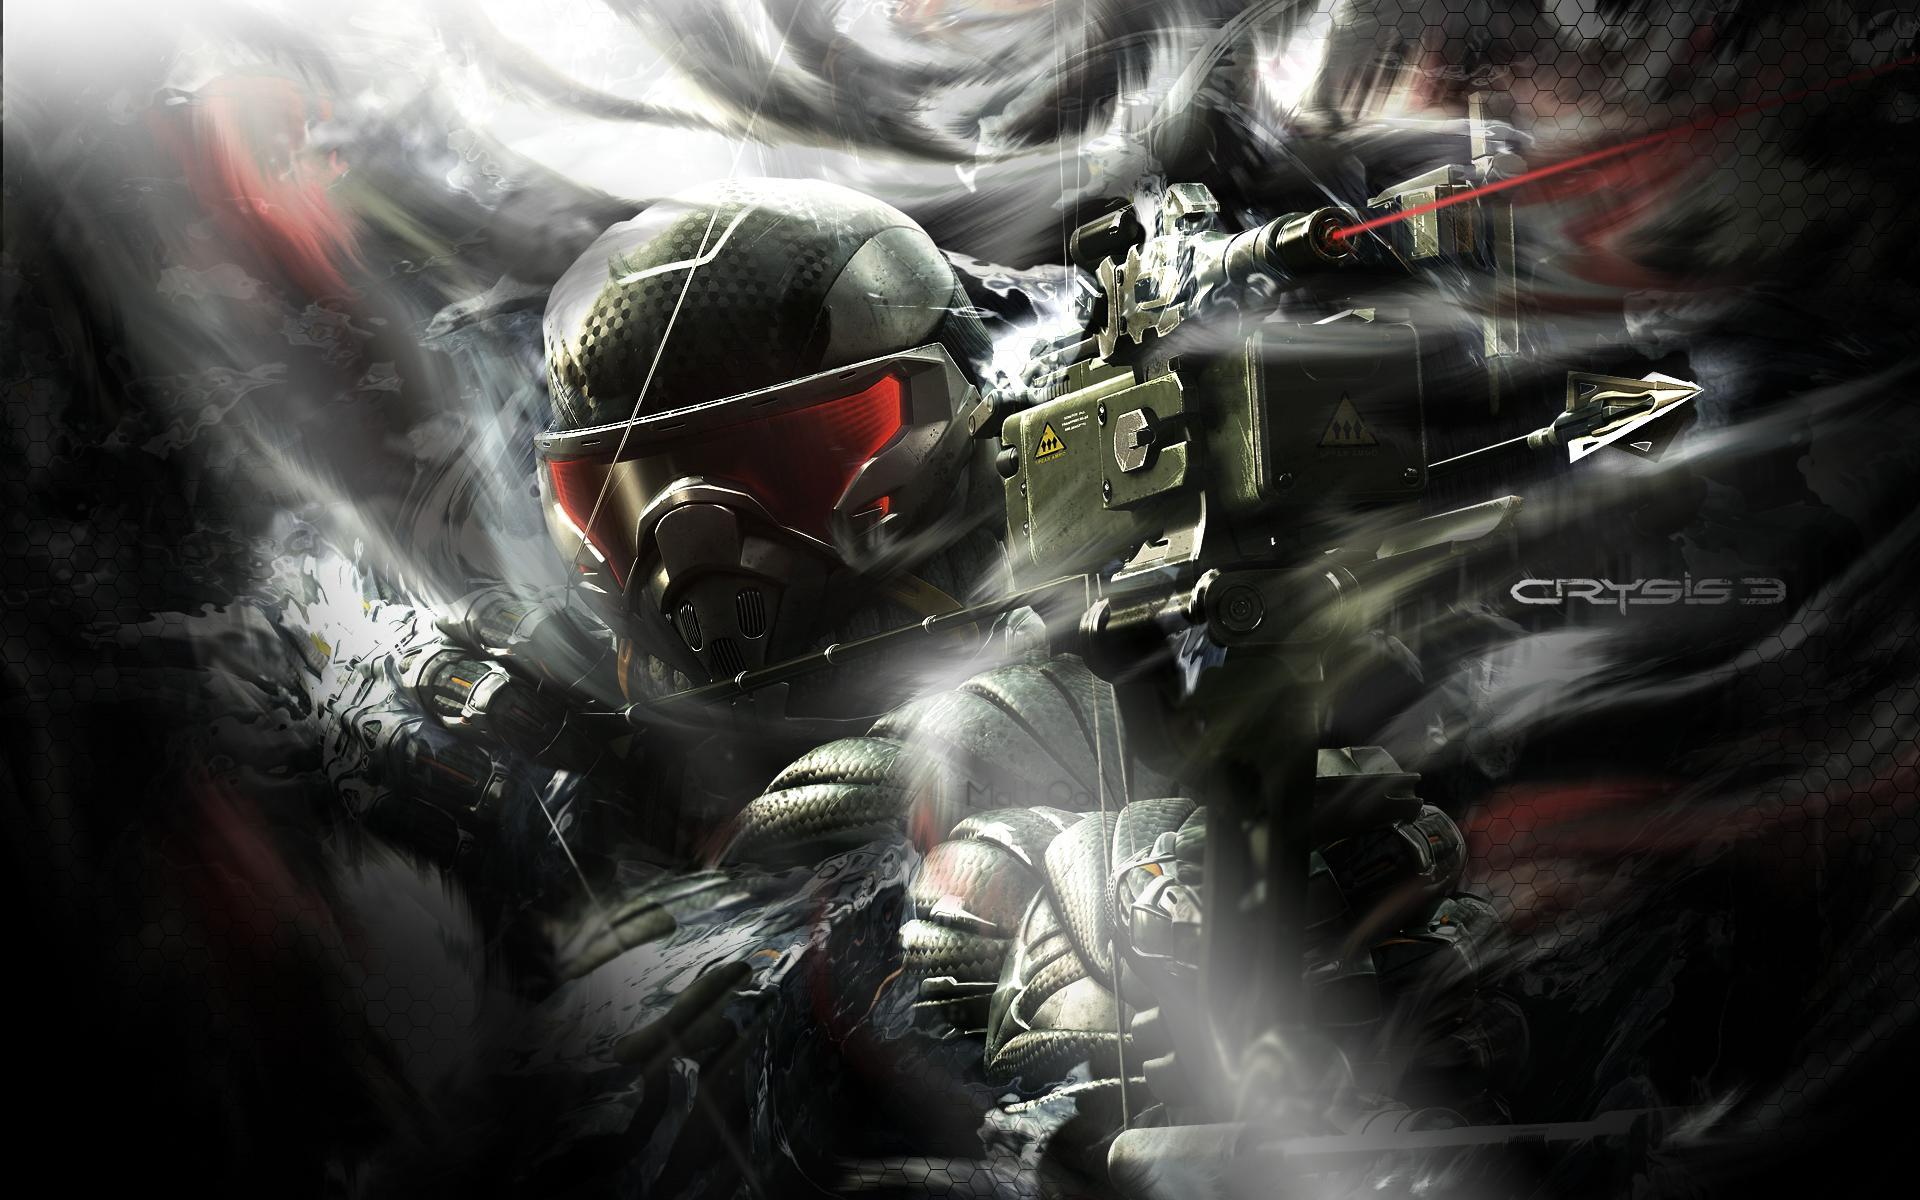 crysis 4 wallpaper hd-#9